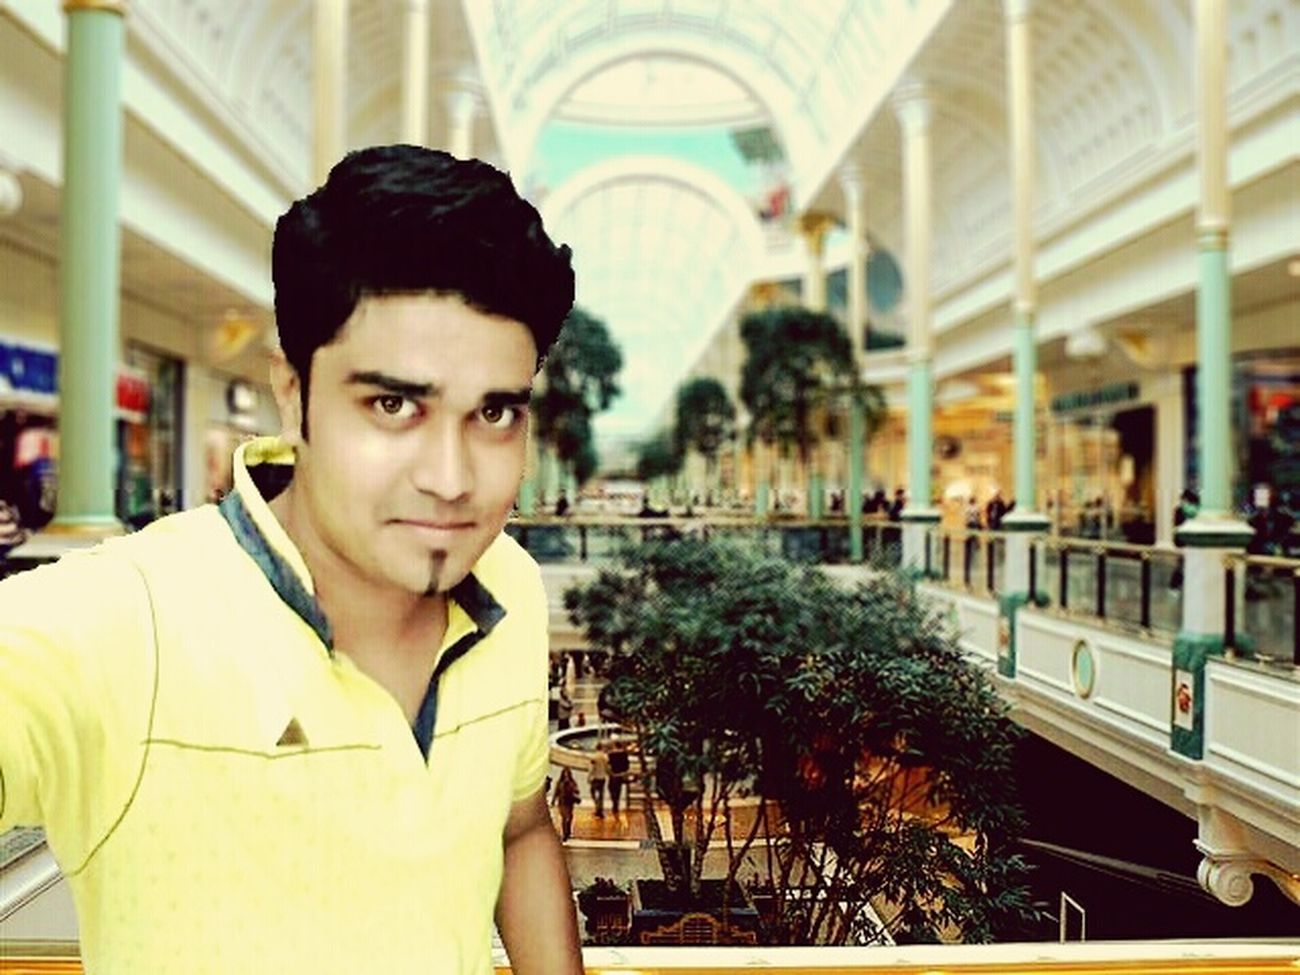 Shopping Mall Shopping ♡ He's Handsome Men Cool Vवेक Editography Lovely Handsome The Traveler - 2015 EyeEm Awards Instamood